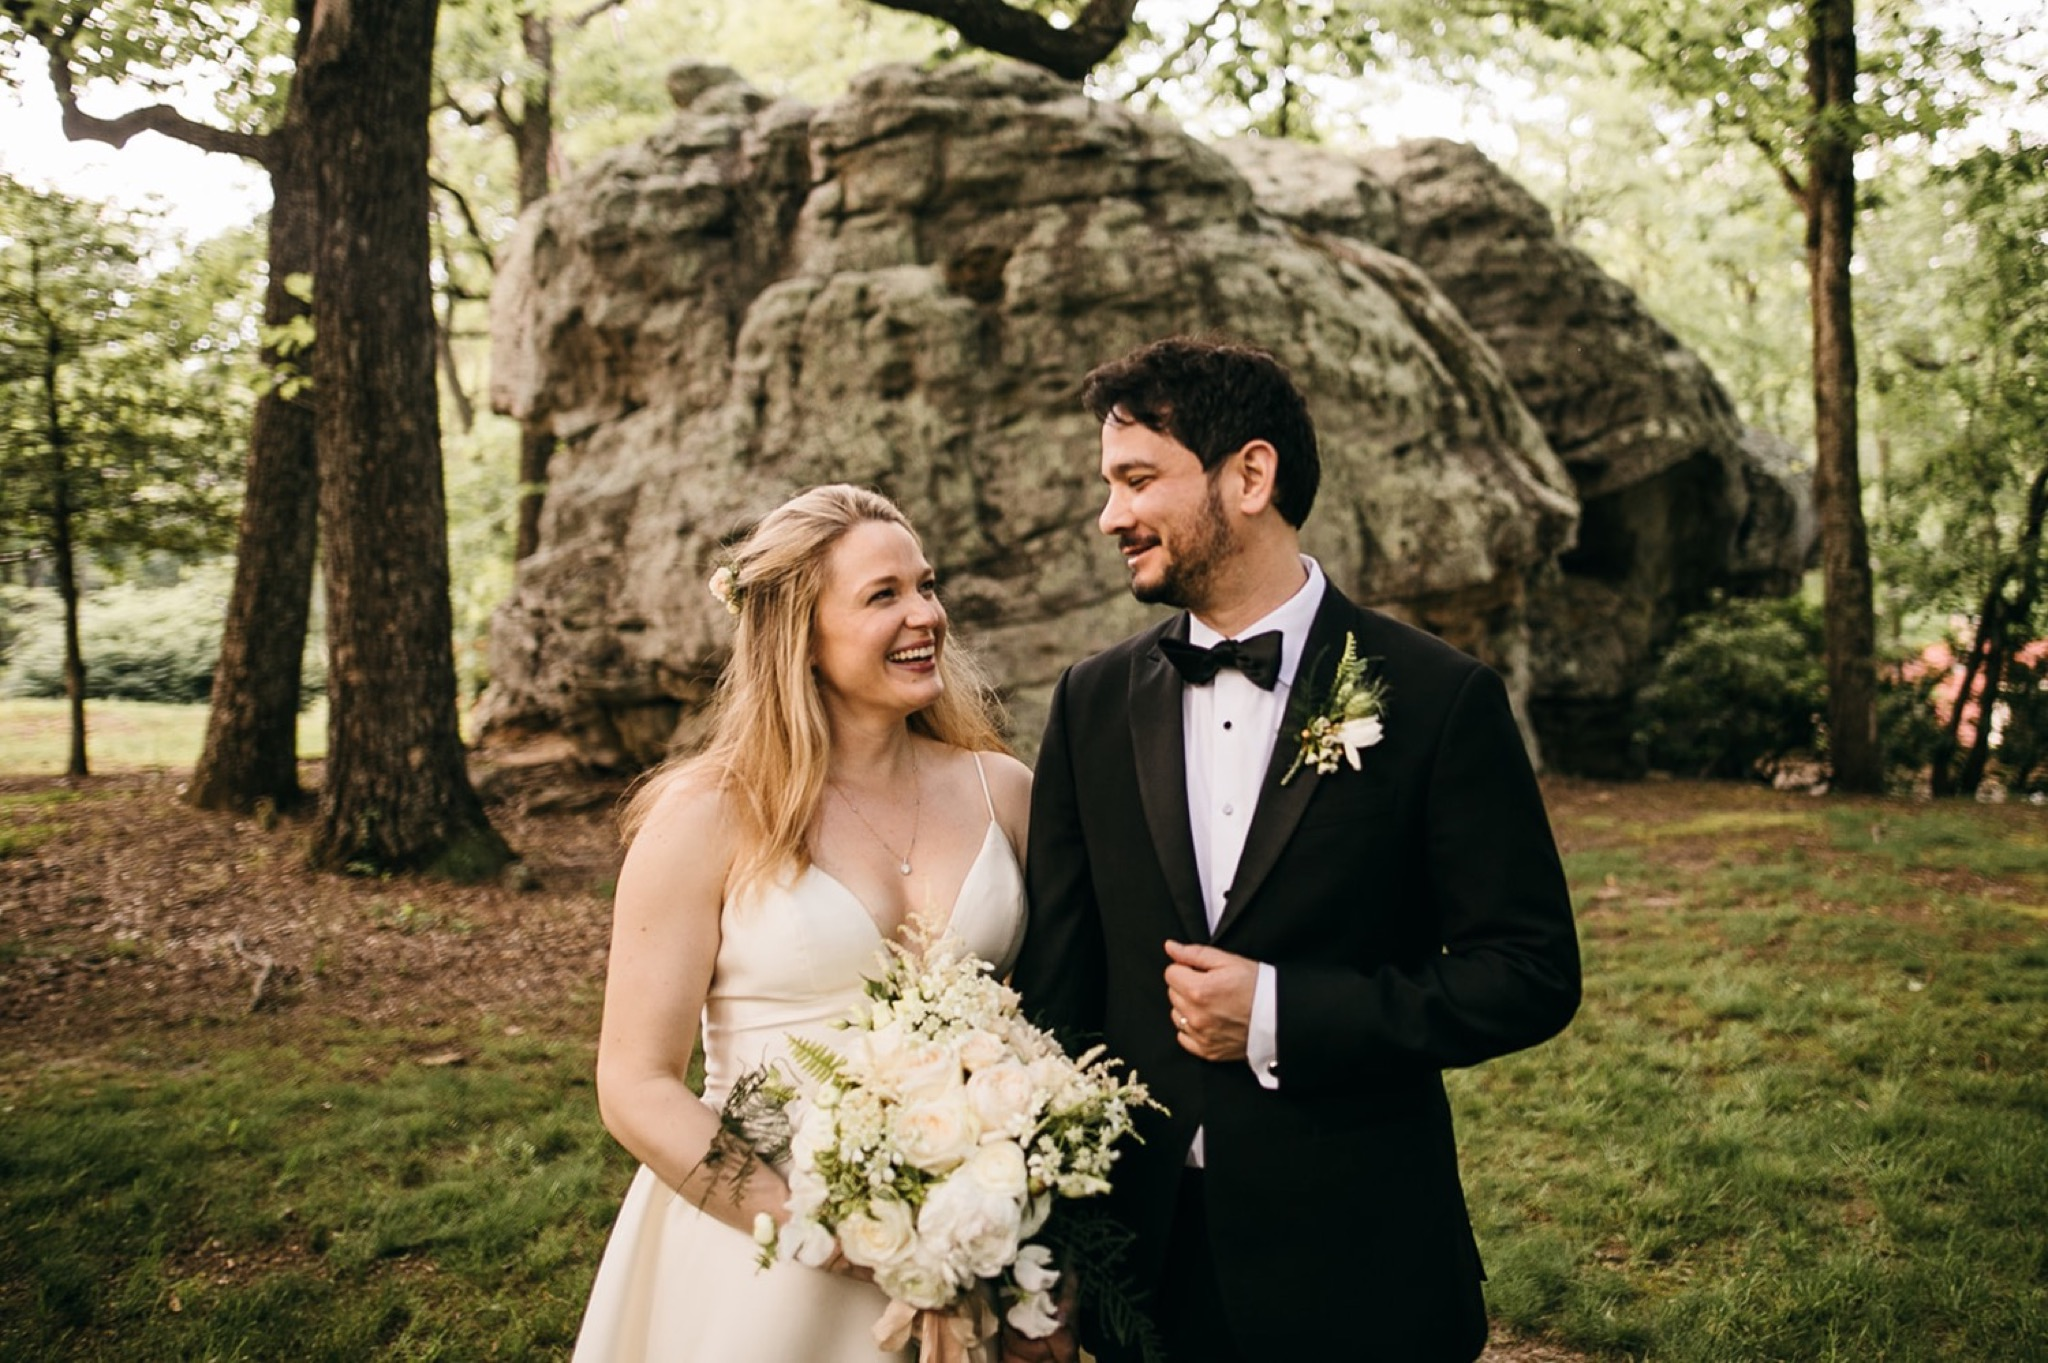 bride and groom stand in grassy field near large rocks on Lookout Mountain near Chattanooga